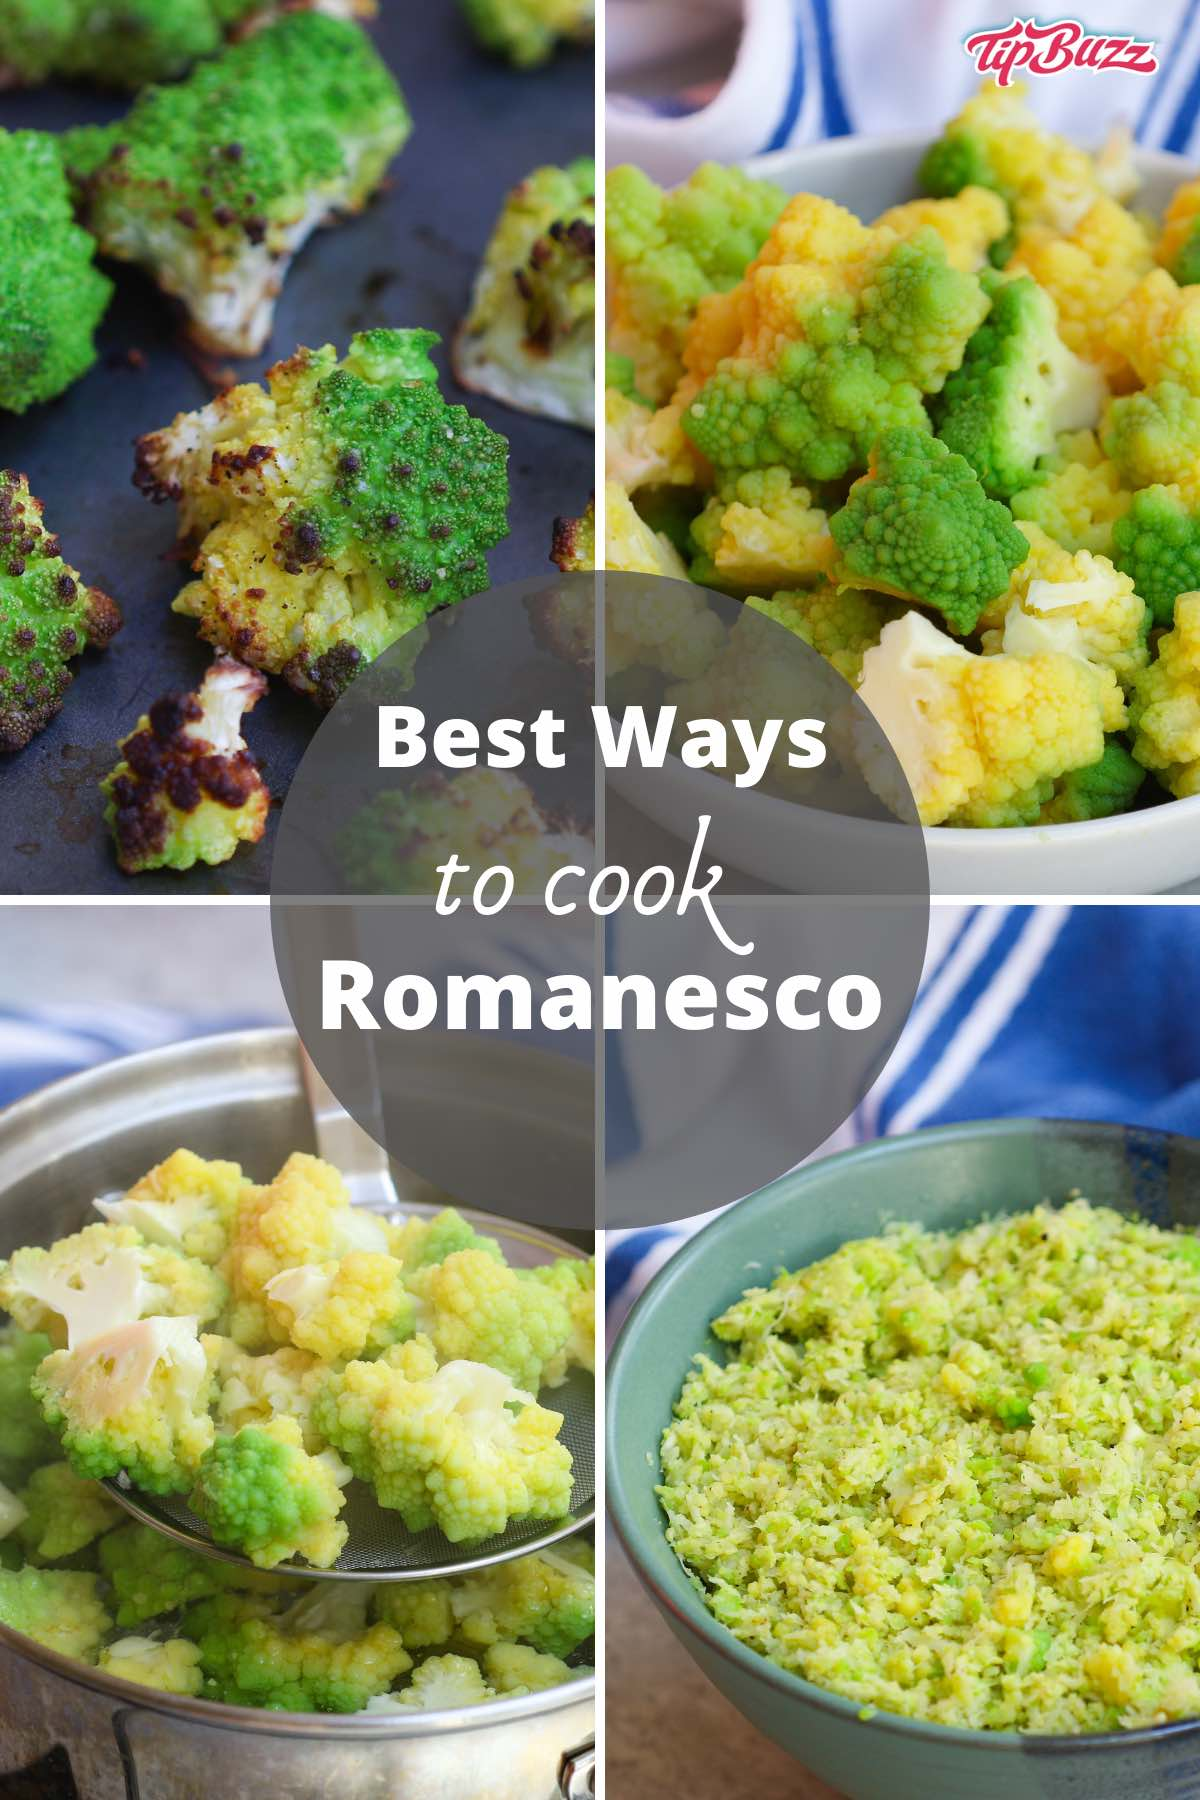 Romanesco is a delicious vegetable that's a cross between broccoli and cauliflower. It's so easy to prepare by boiling, roasting, ricing or steaming! #romanesco